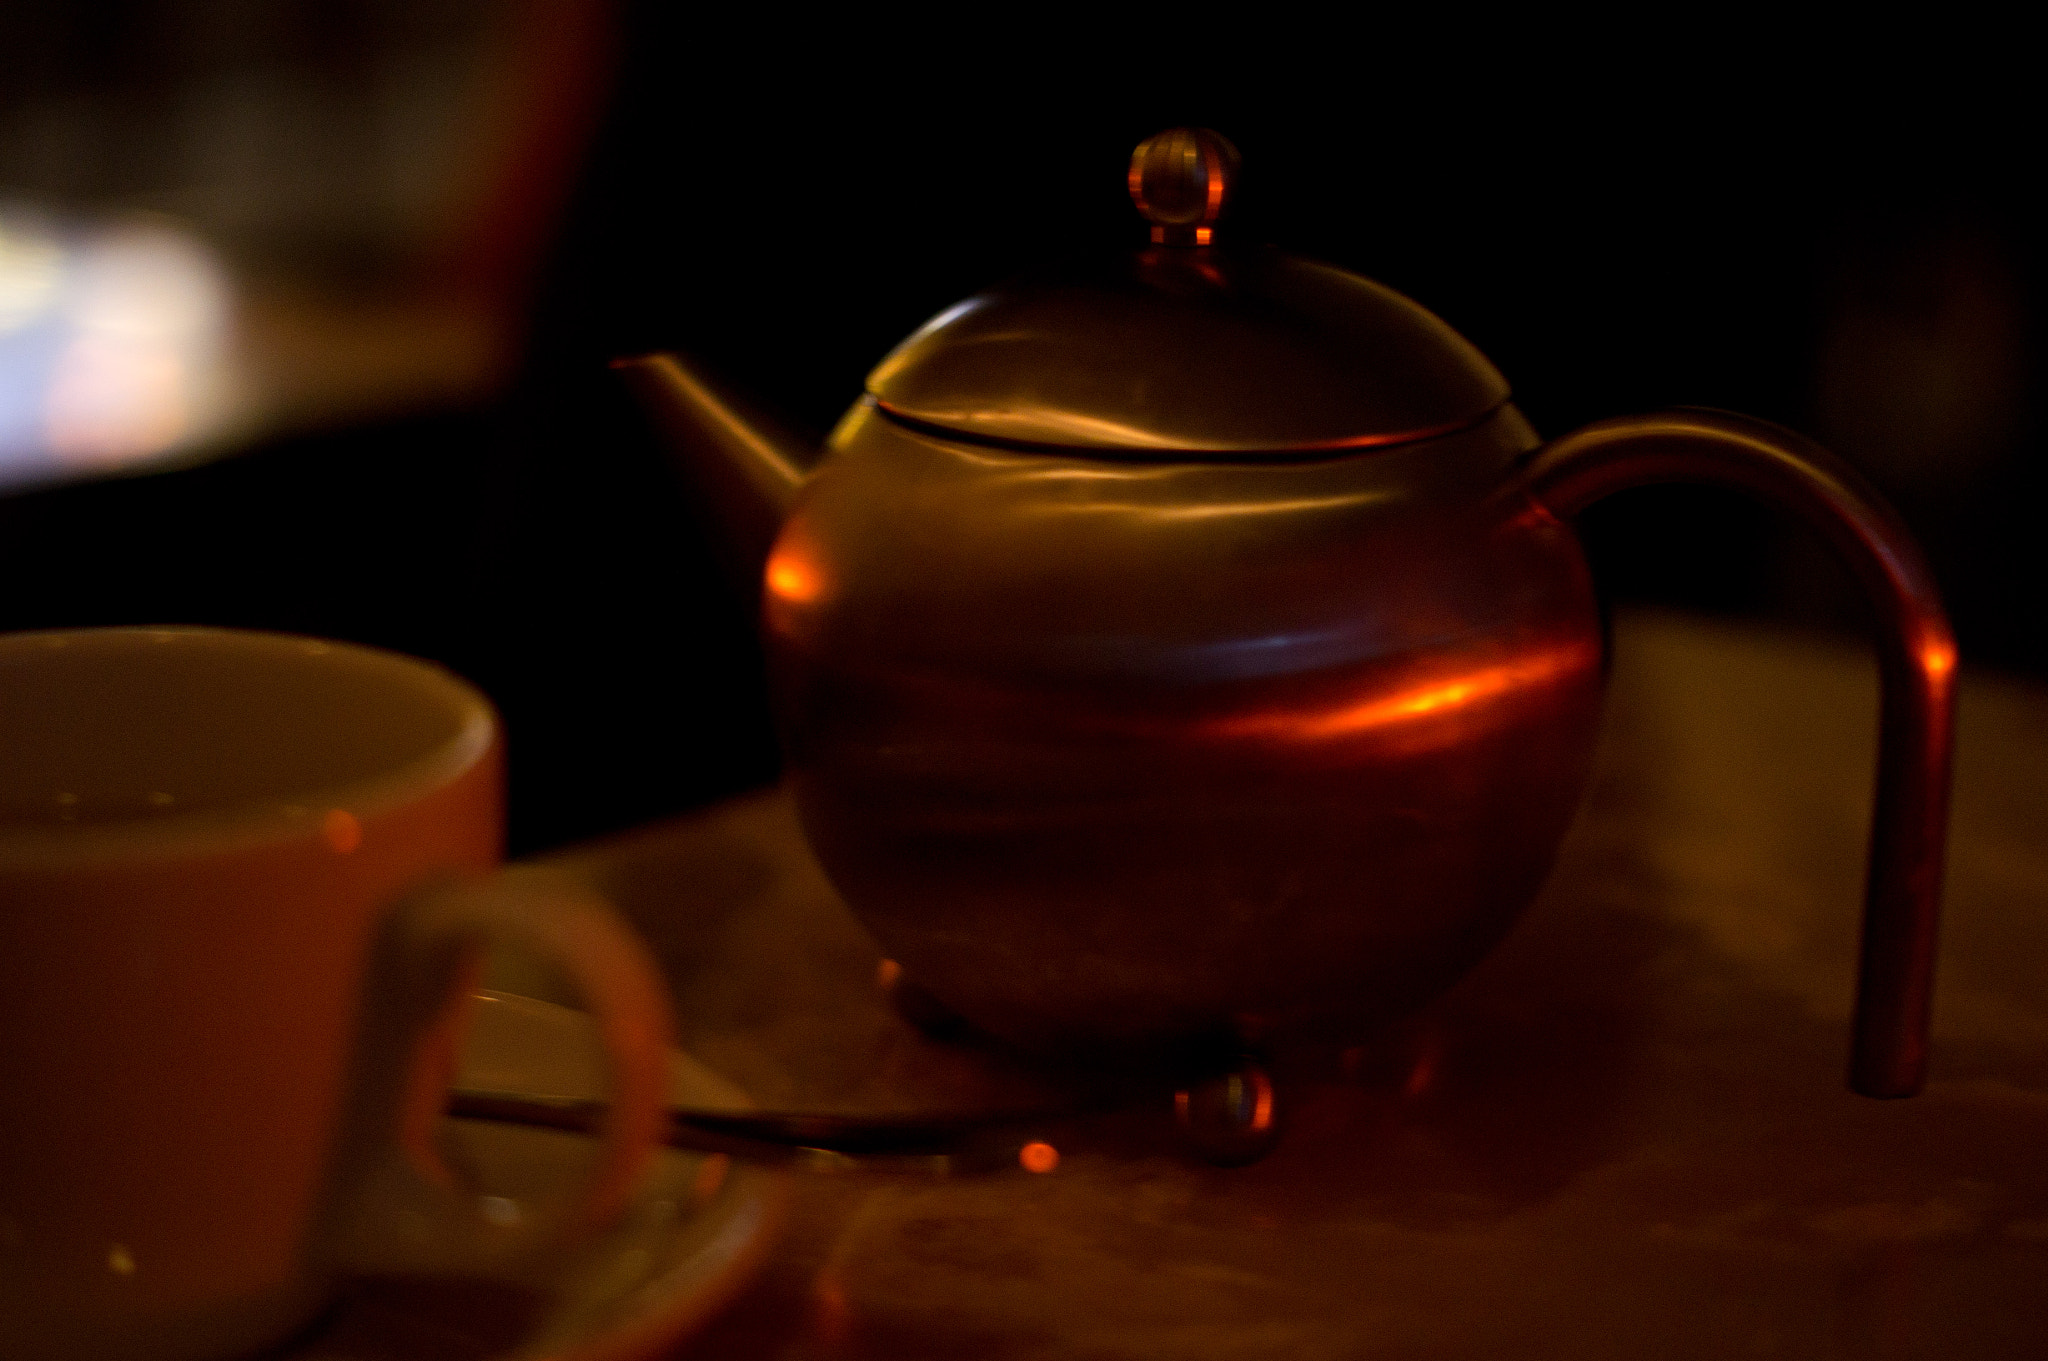 Photograph Tea by Evan Laukli on 500px